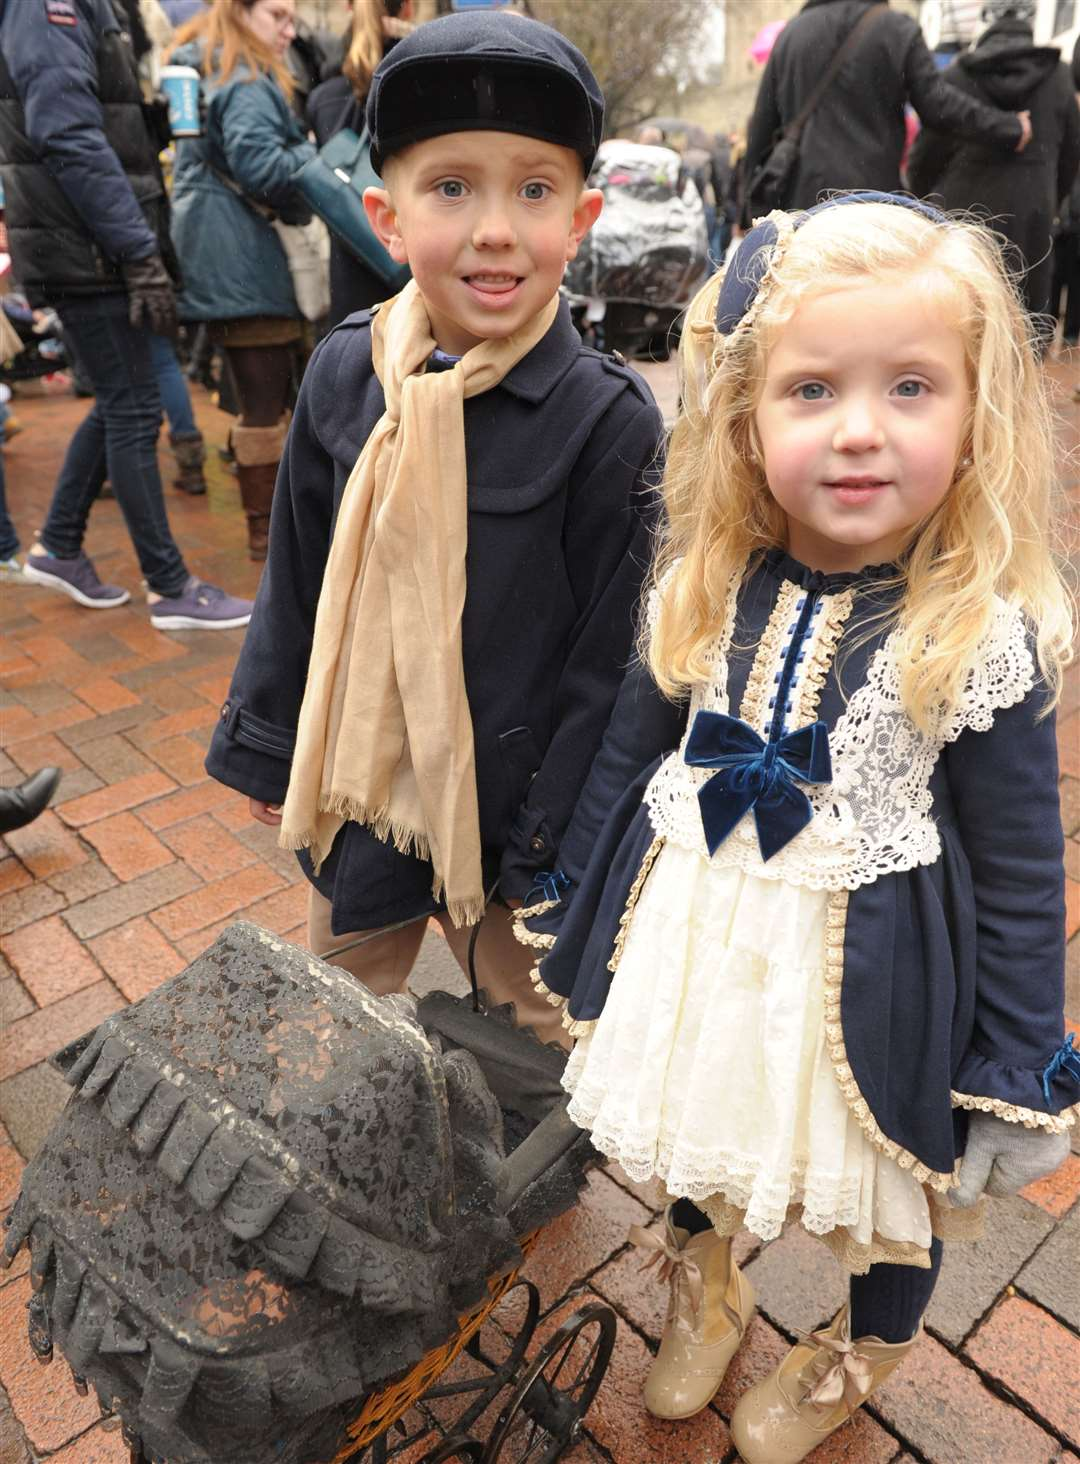 Tyler and Annabella at last year's Christmas Festival Picture: Steve Crispe